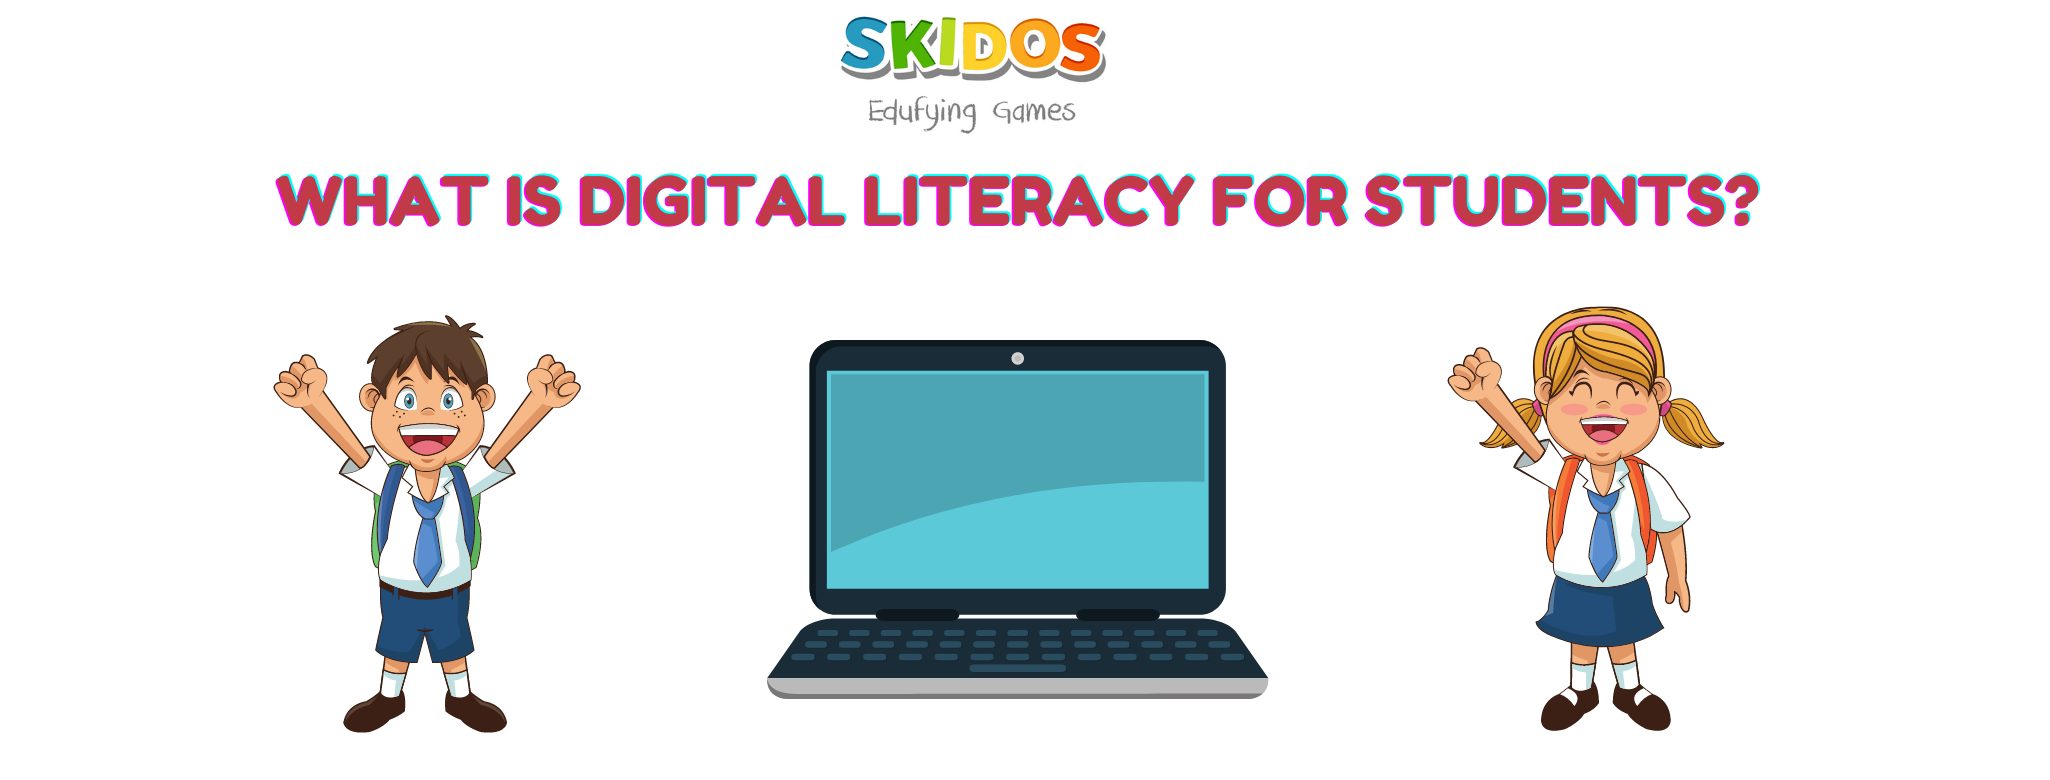 What is digital literacy for students